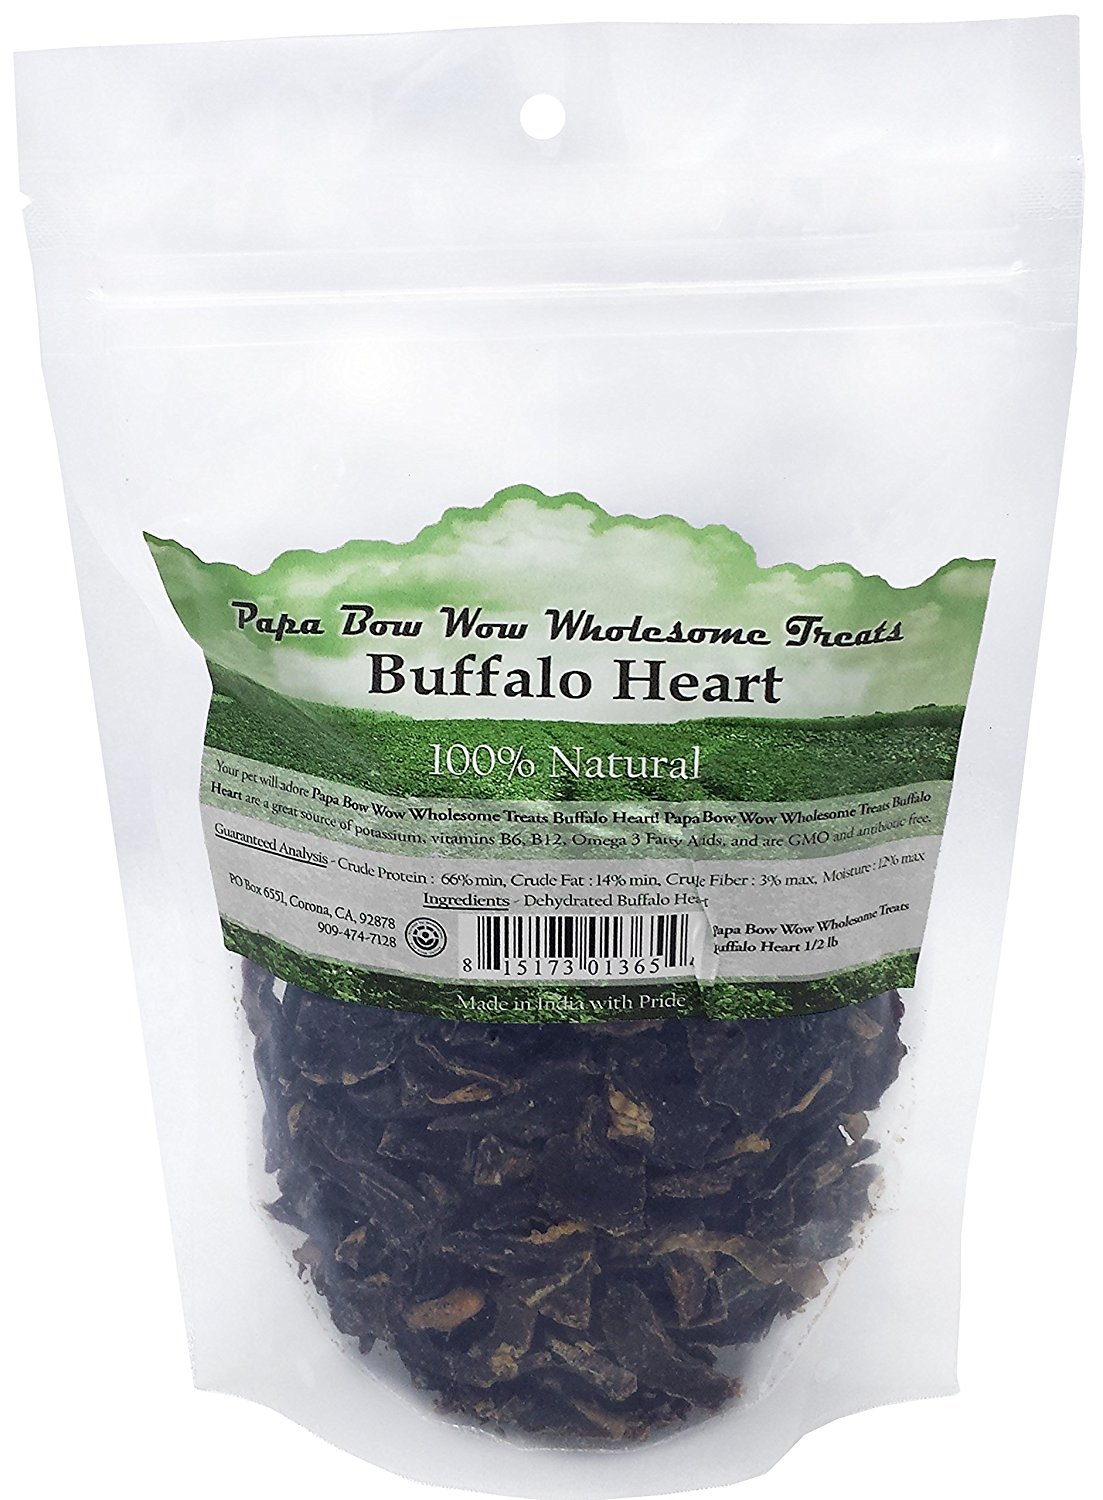 Papa Bow Wow PBW13654 Buffalo Heart Dog Treats - 0.5 lbs